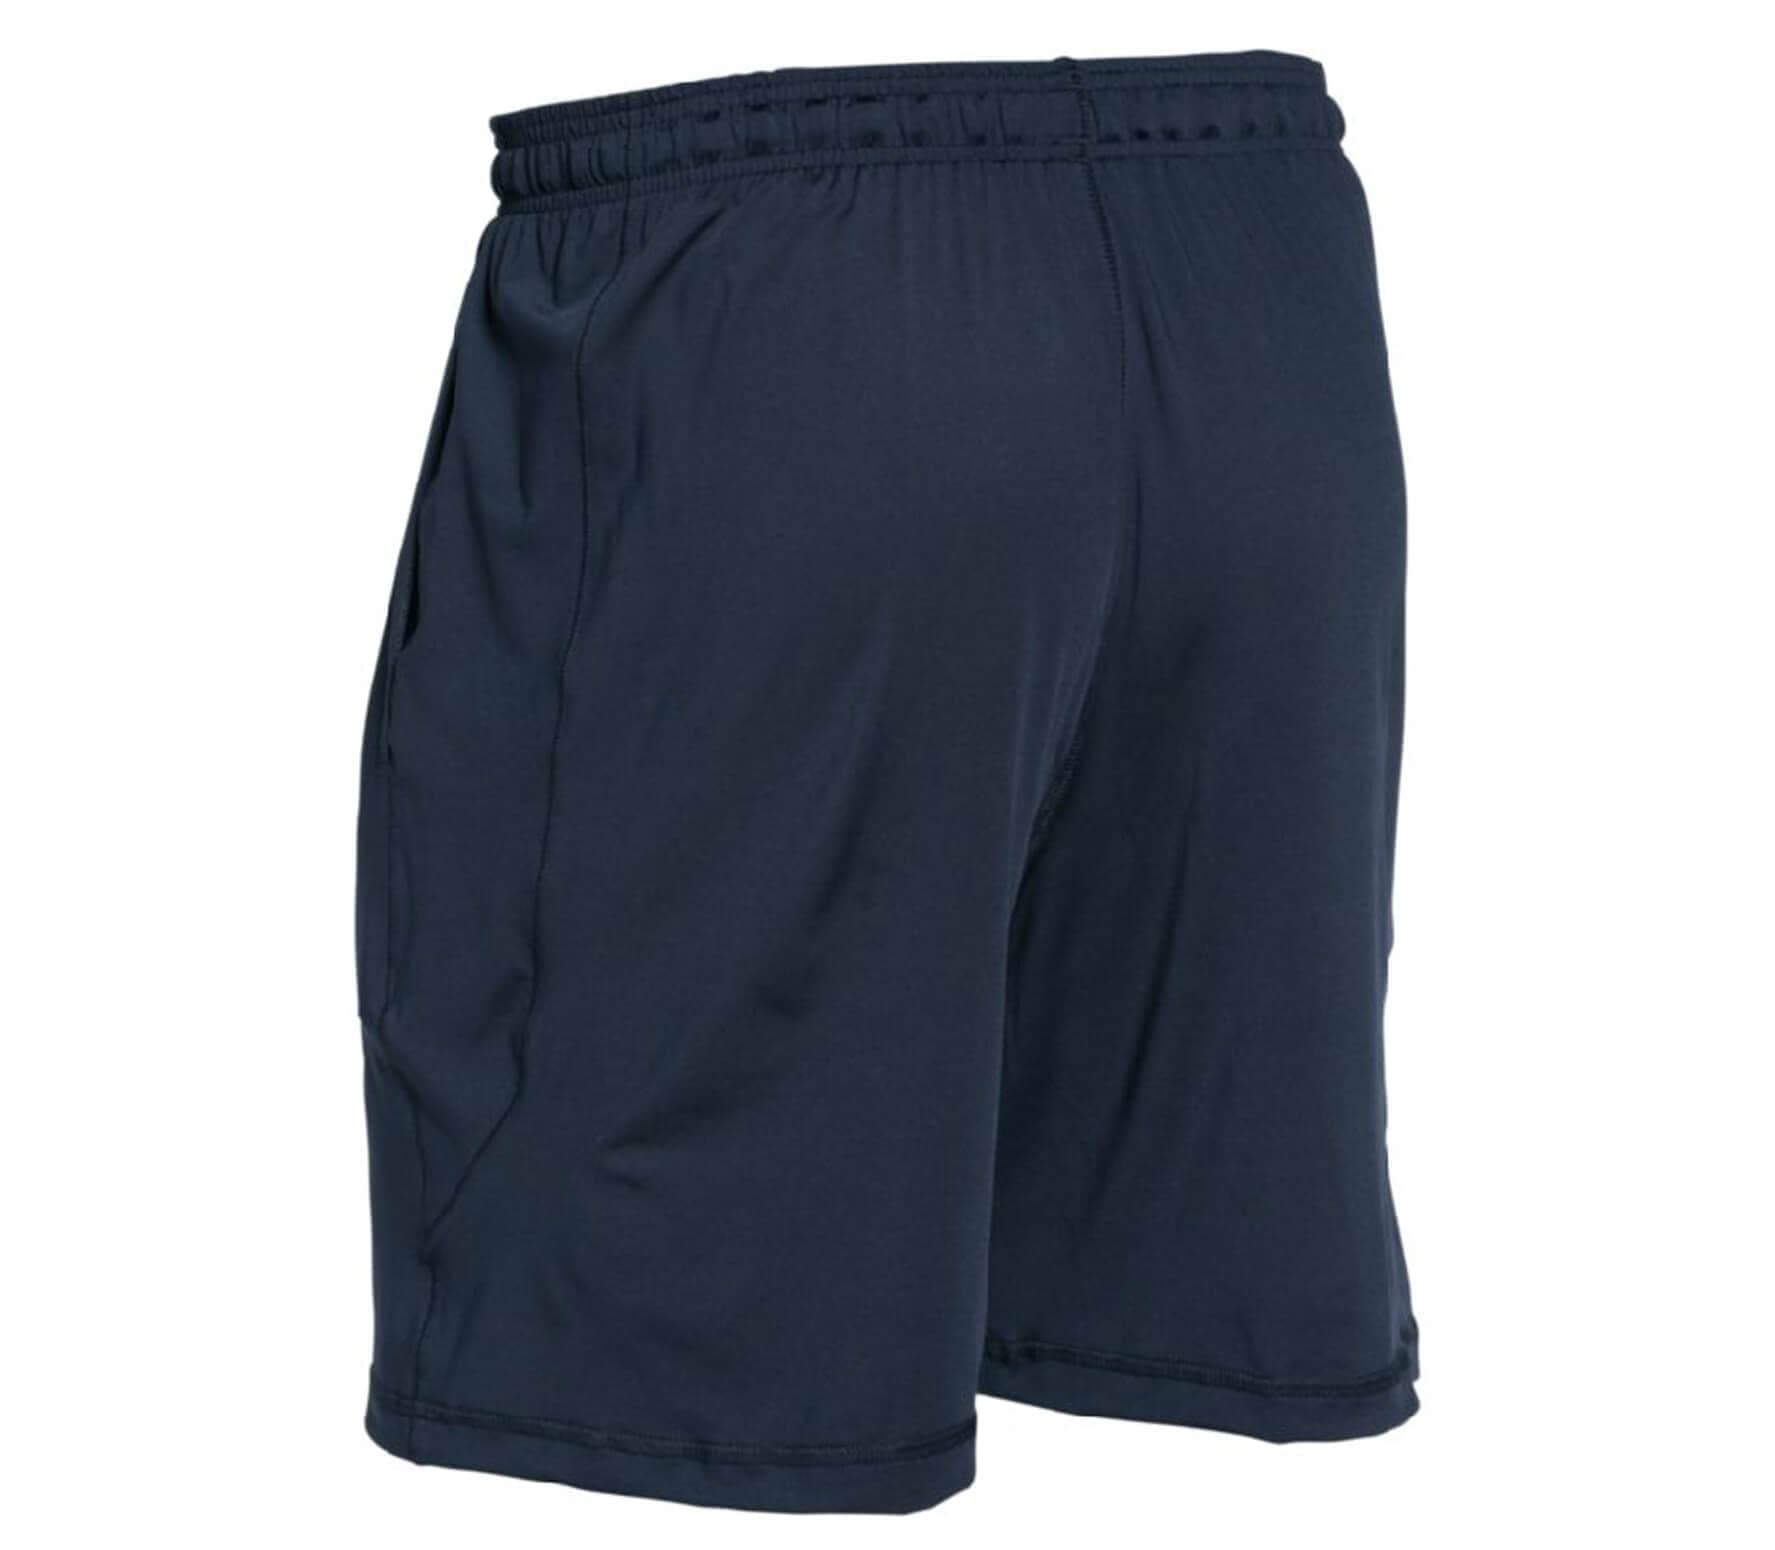 Under Armour - Raid 8 Inch men's training shorts (dark blue)